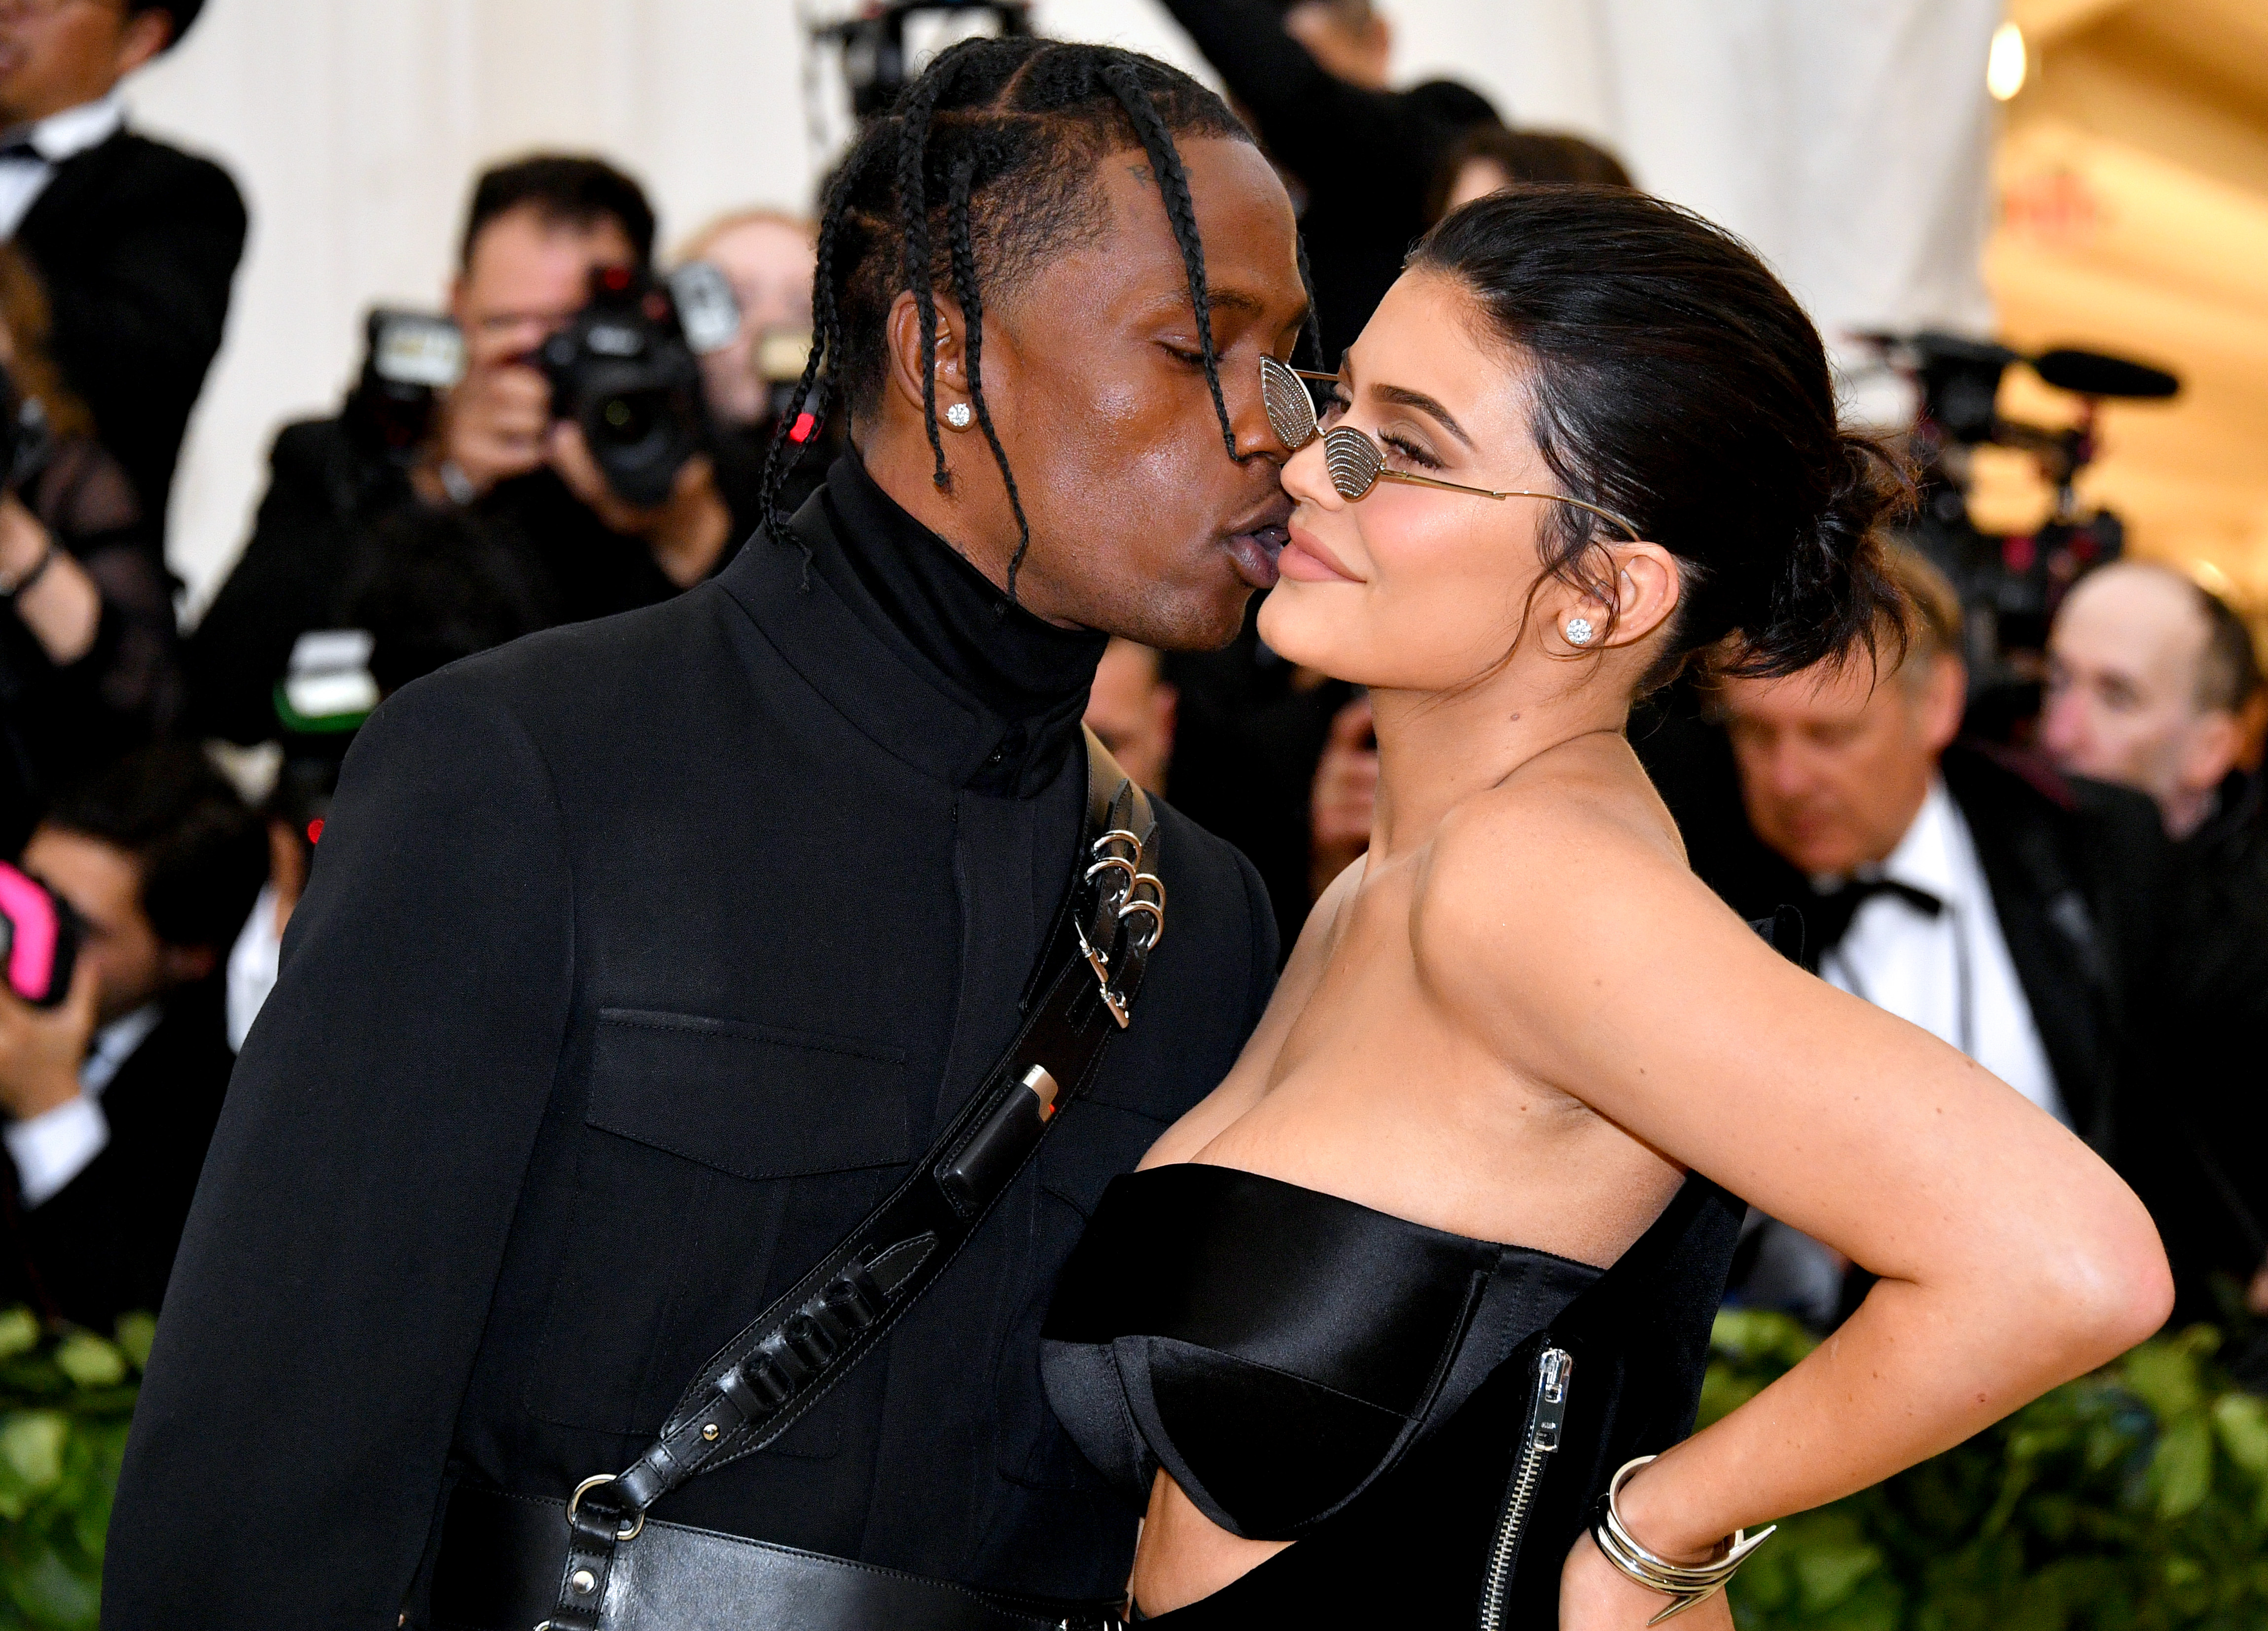 d5a2d9c37f8a Kylie Jenner and Travis Scott Just Made Their Red Carpet Debut at the Met  Gala